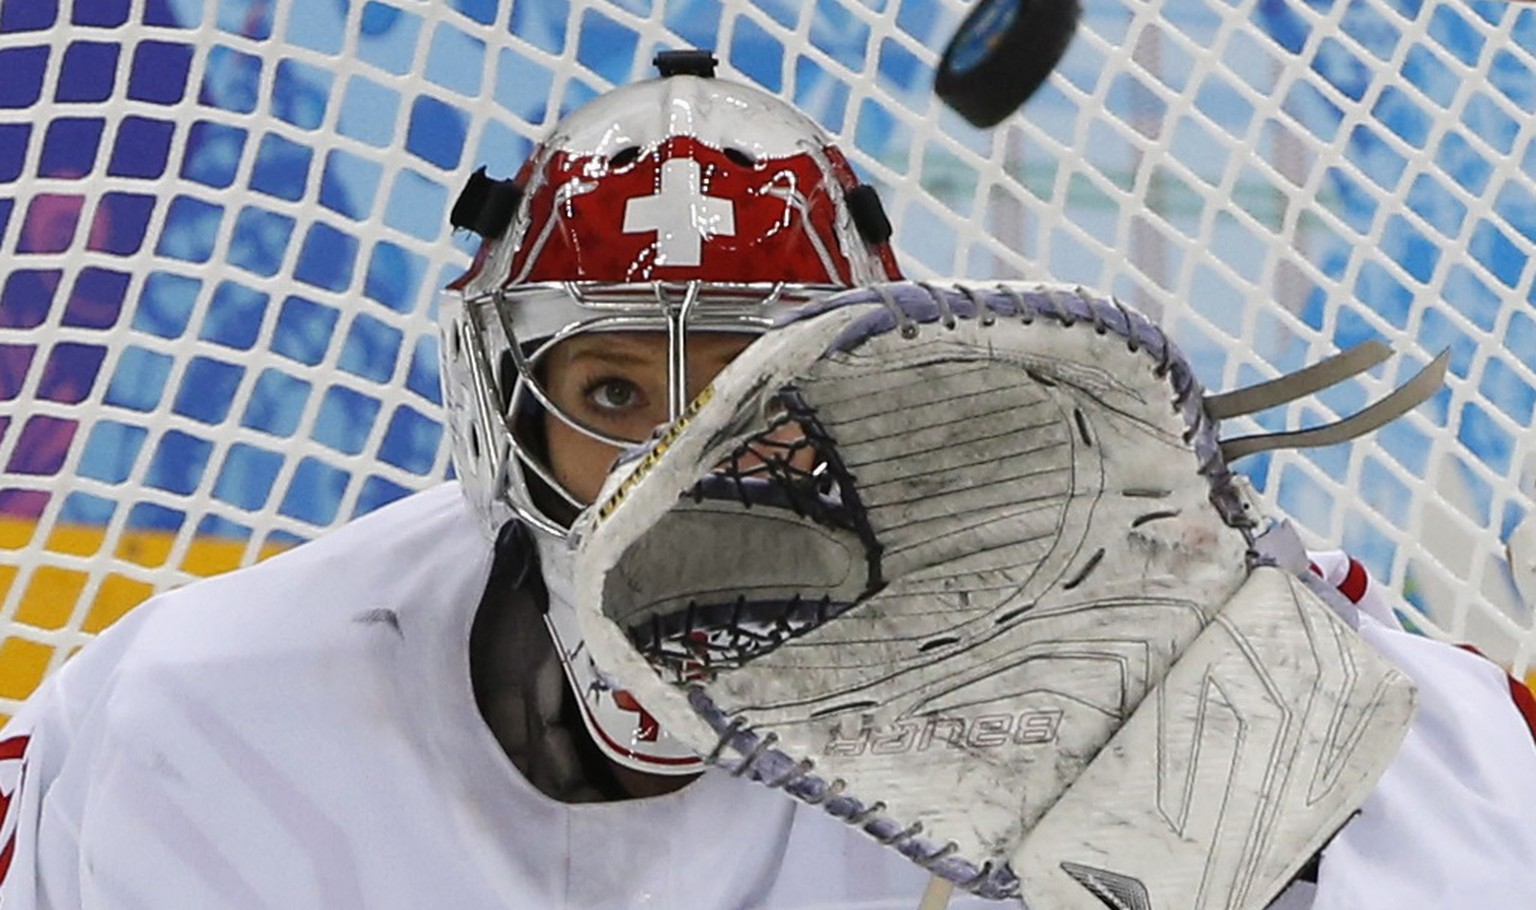 Switzerland's goalie Florence Schelling makes a save against Team USA during the third period of their women's preliminary round hockey game at the Sochi 2014 Winter Olympic Games February 10, 2014. REUTERS/Grigory Dukor (RUSSIA  - Tags: SPORT ICE HOCKEY OLYMPICS TPX IMAGES OF THE DAY)